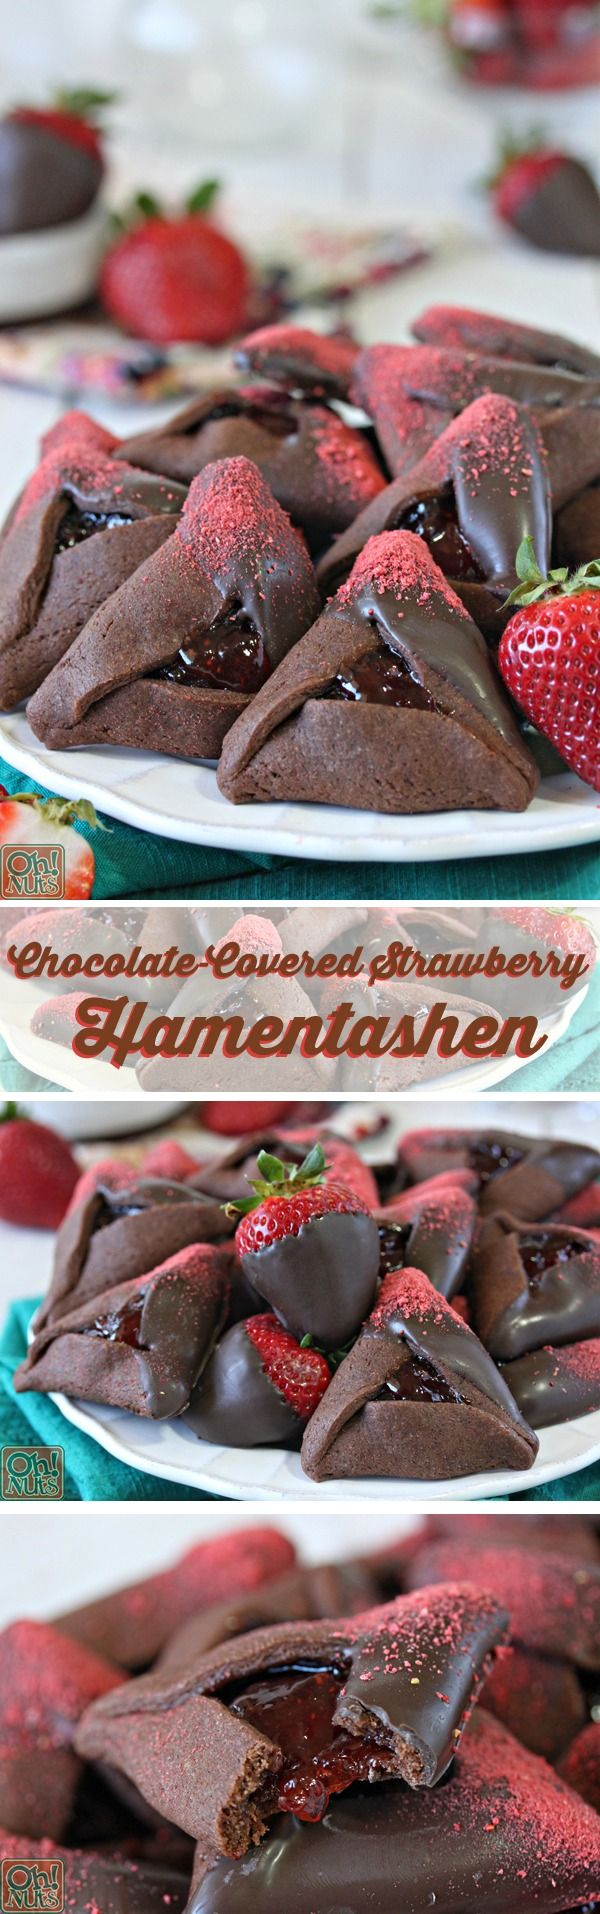 Chocolate-Covered Strawberry Hamantashen - try something a little different this Purim! | From OhNuts.com